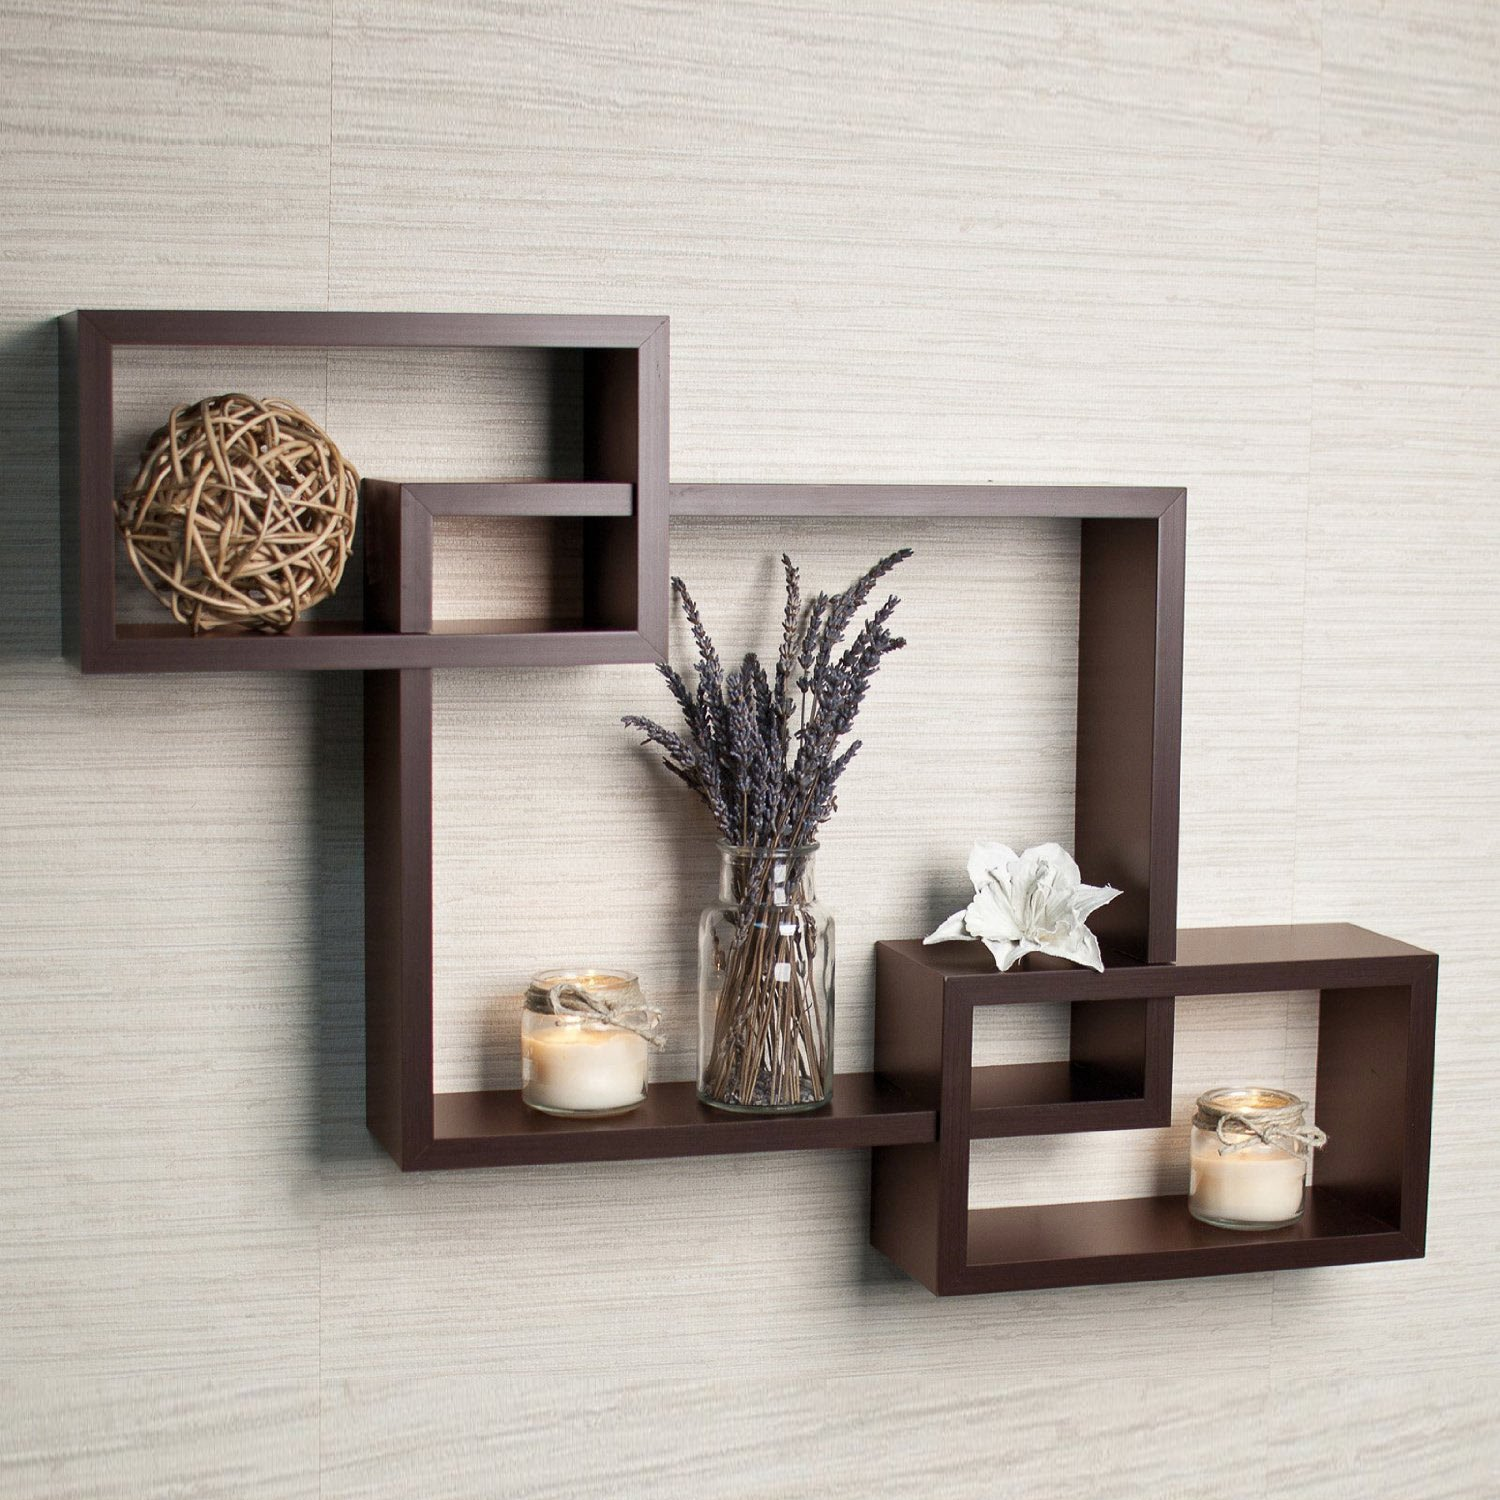 Driftingwood wall shelf rack set of 3 intersecting wall shelves driftingwood wall shelf rack set of 3 intersecting wall shelves brown amazon electronics amipublicfo Gallery